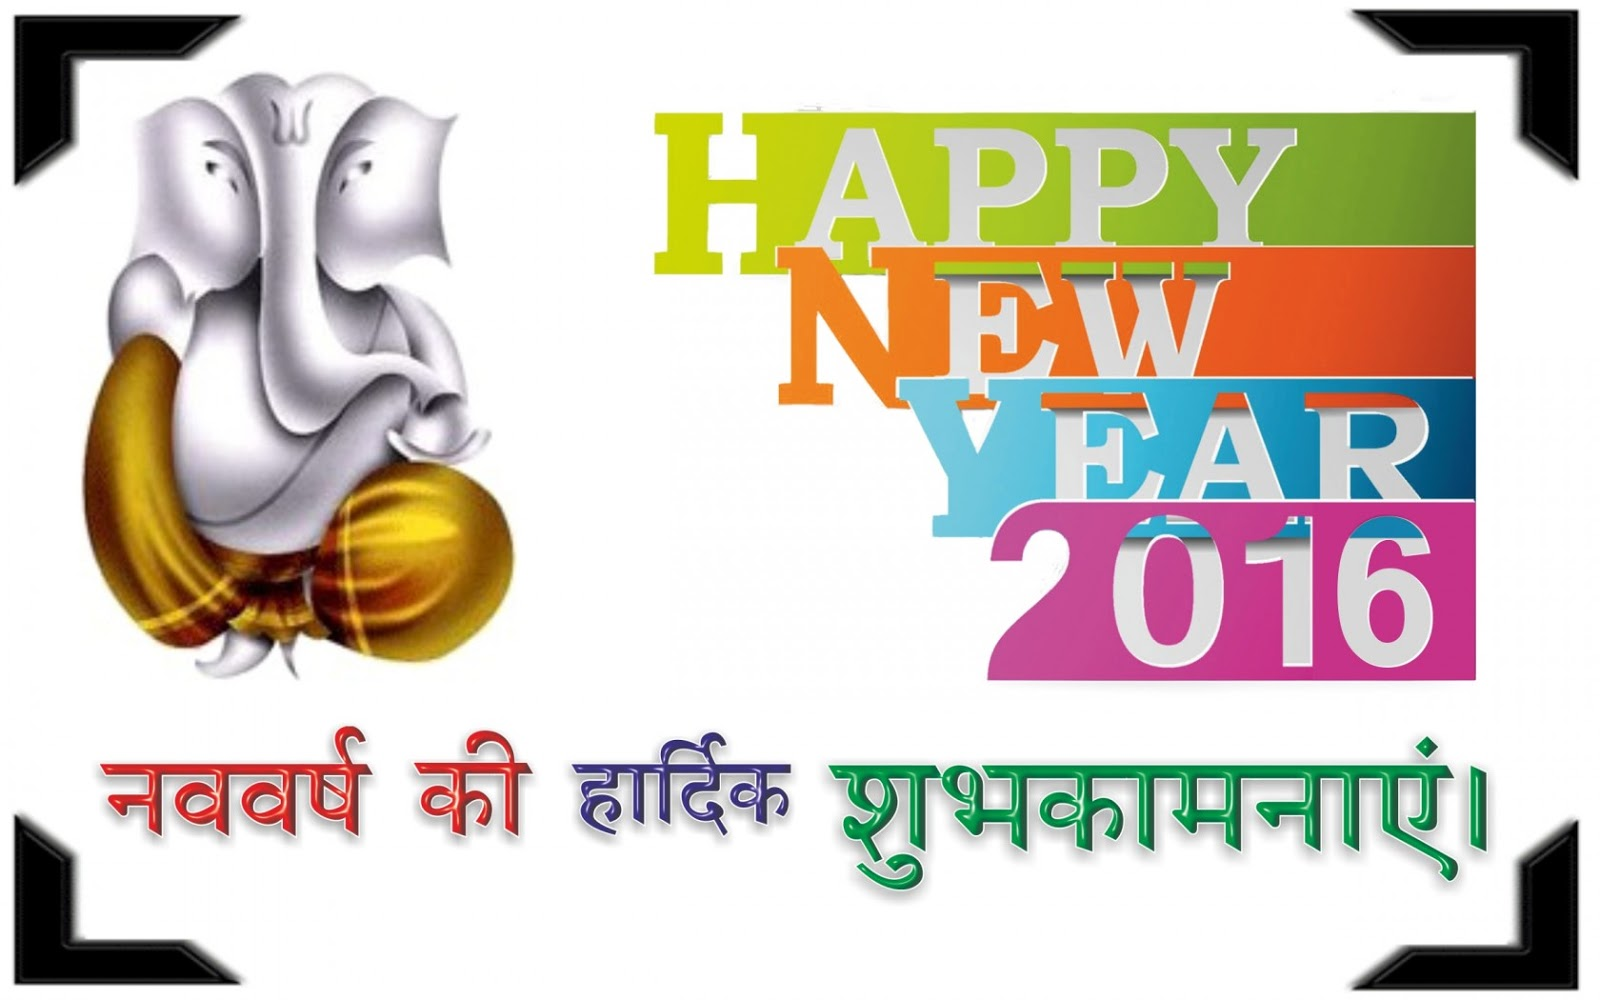 Chodavaramnet advanced happy new year 2016 best wishes and greetings advanced happy new year 2016 best wishes and greetings m4hsunfo